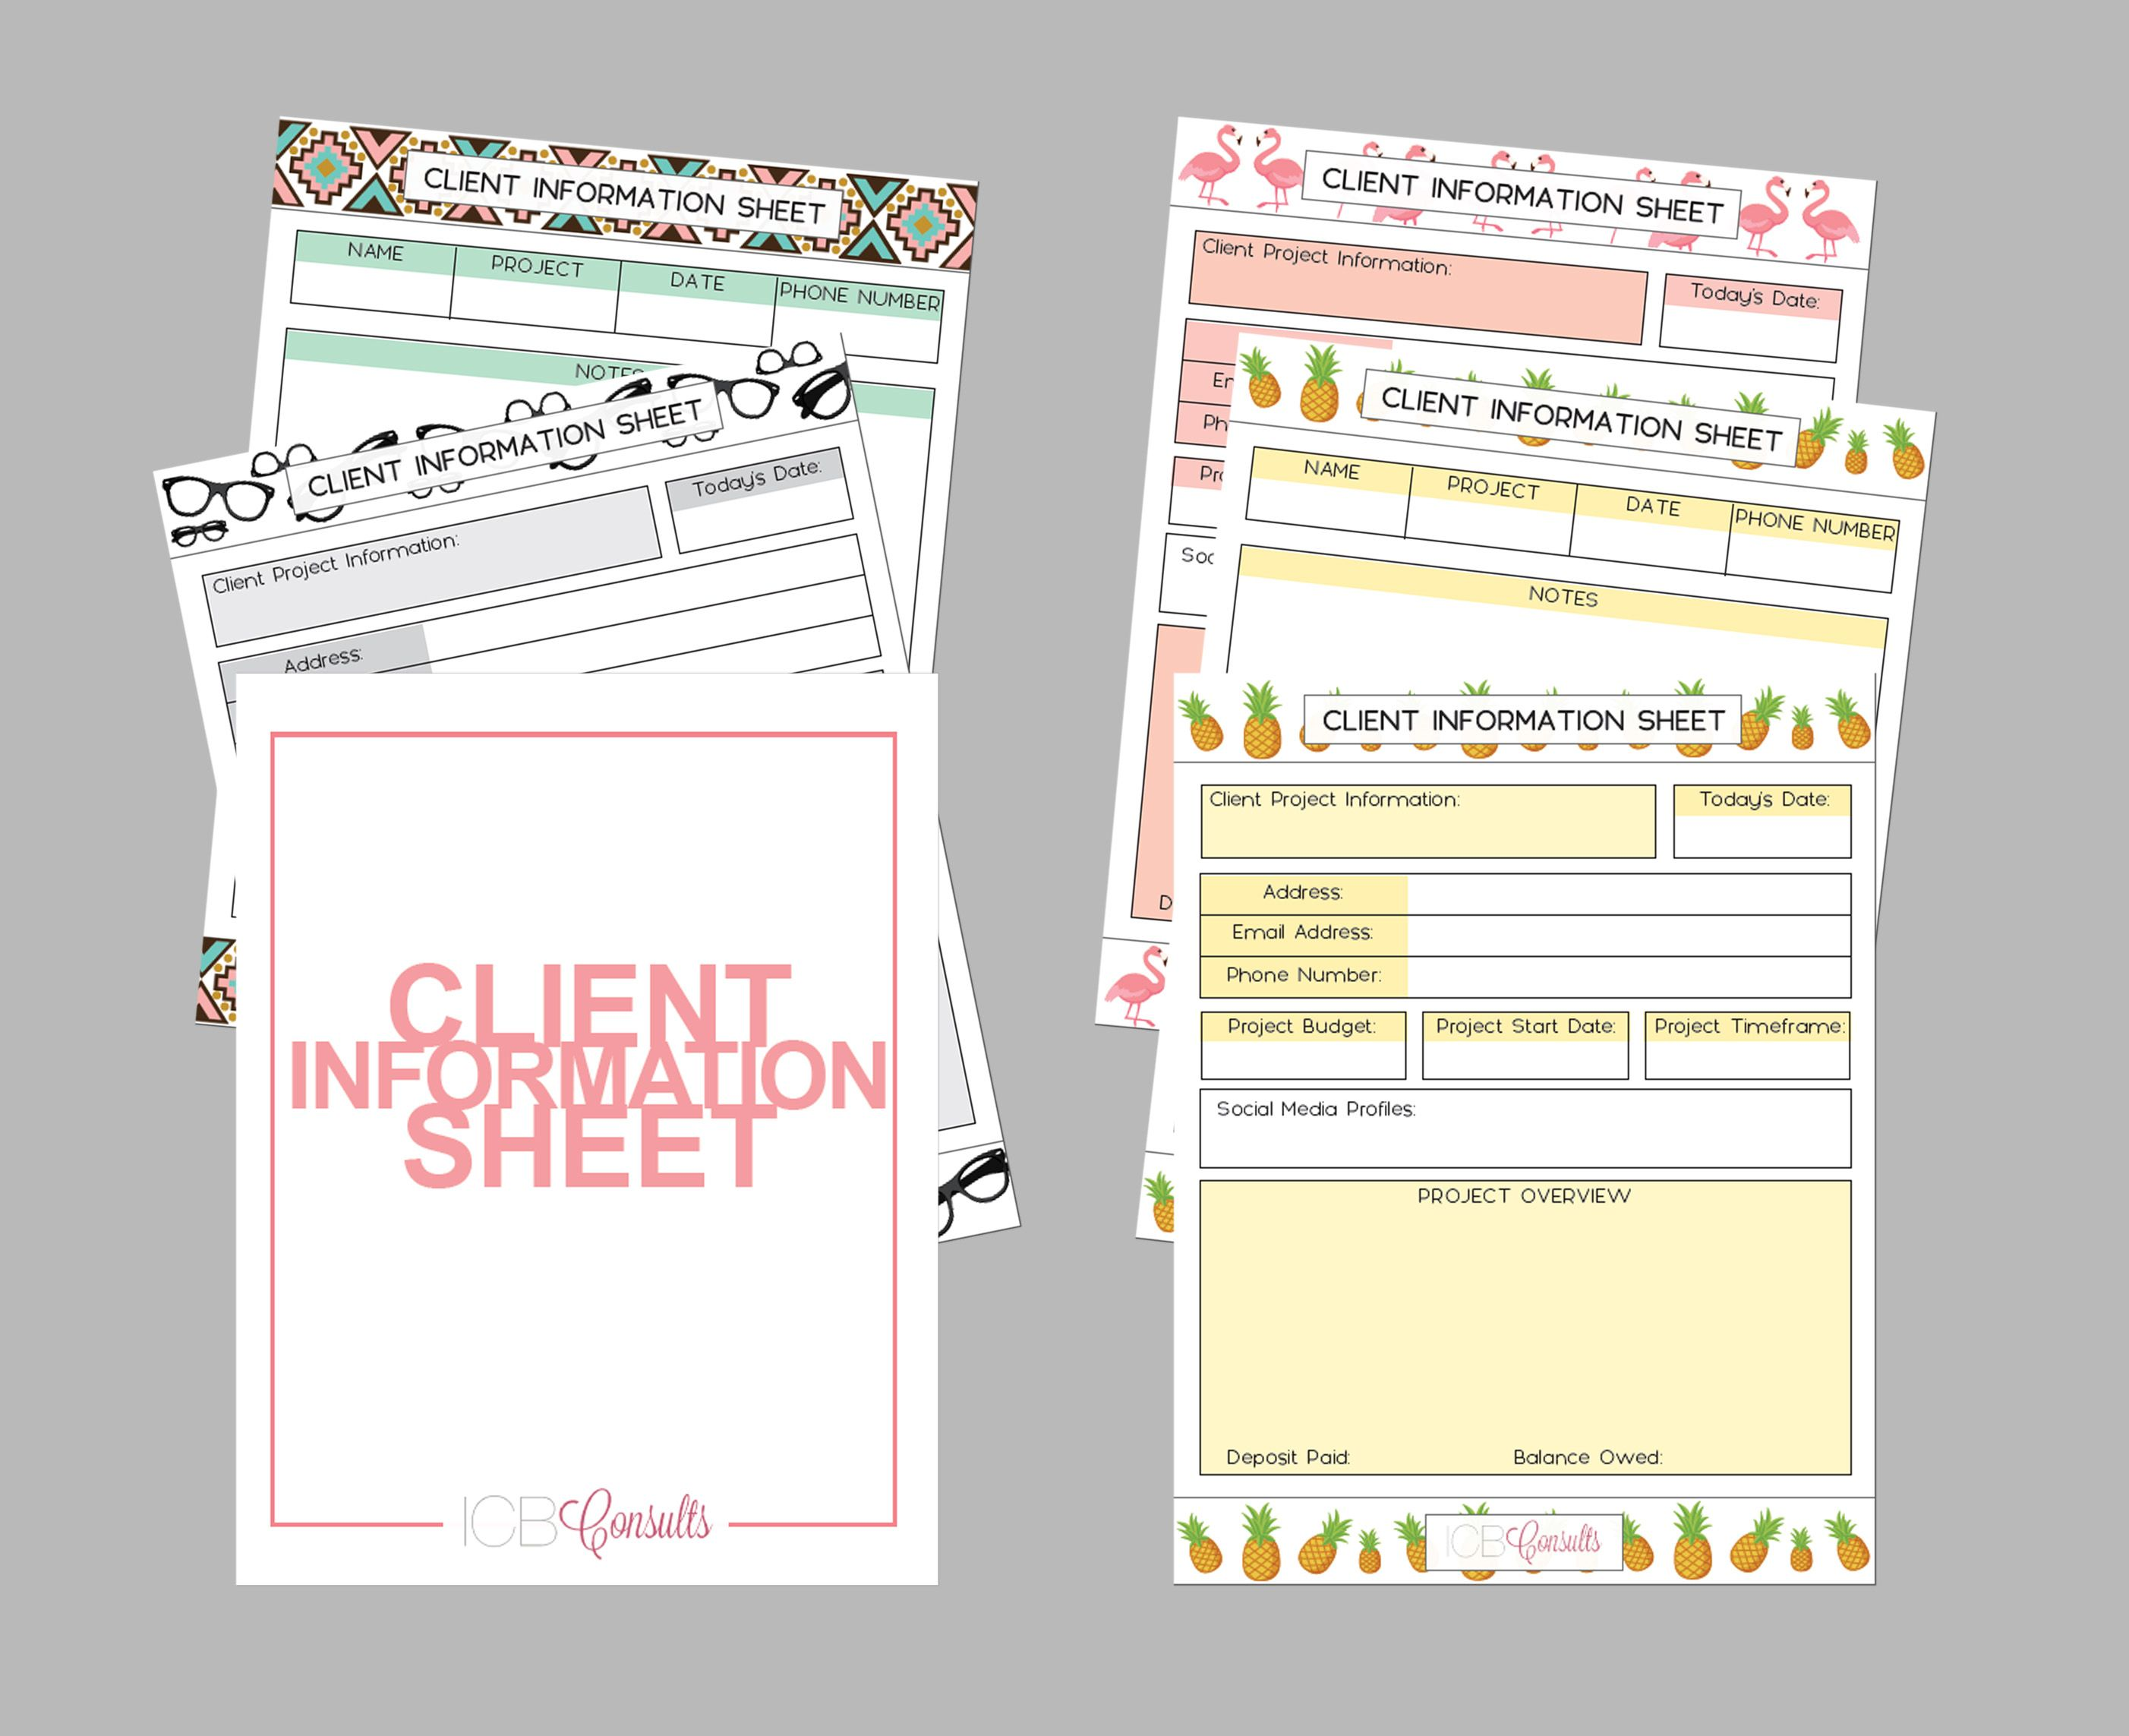 Client Project Information Sheet Is For You Gather